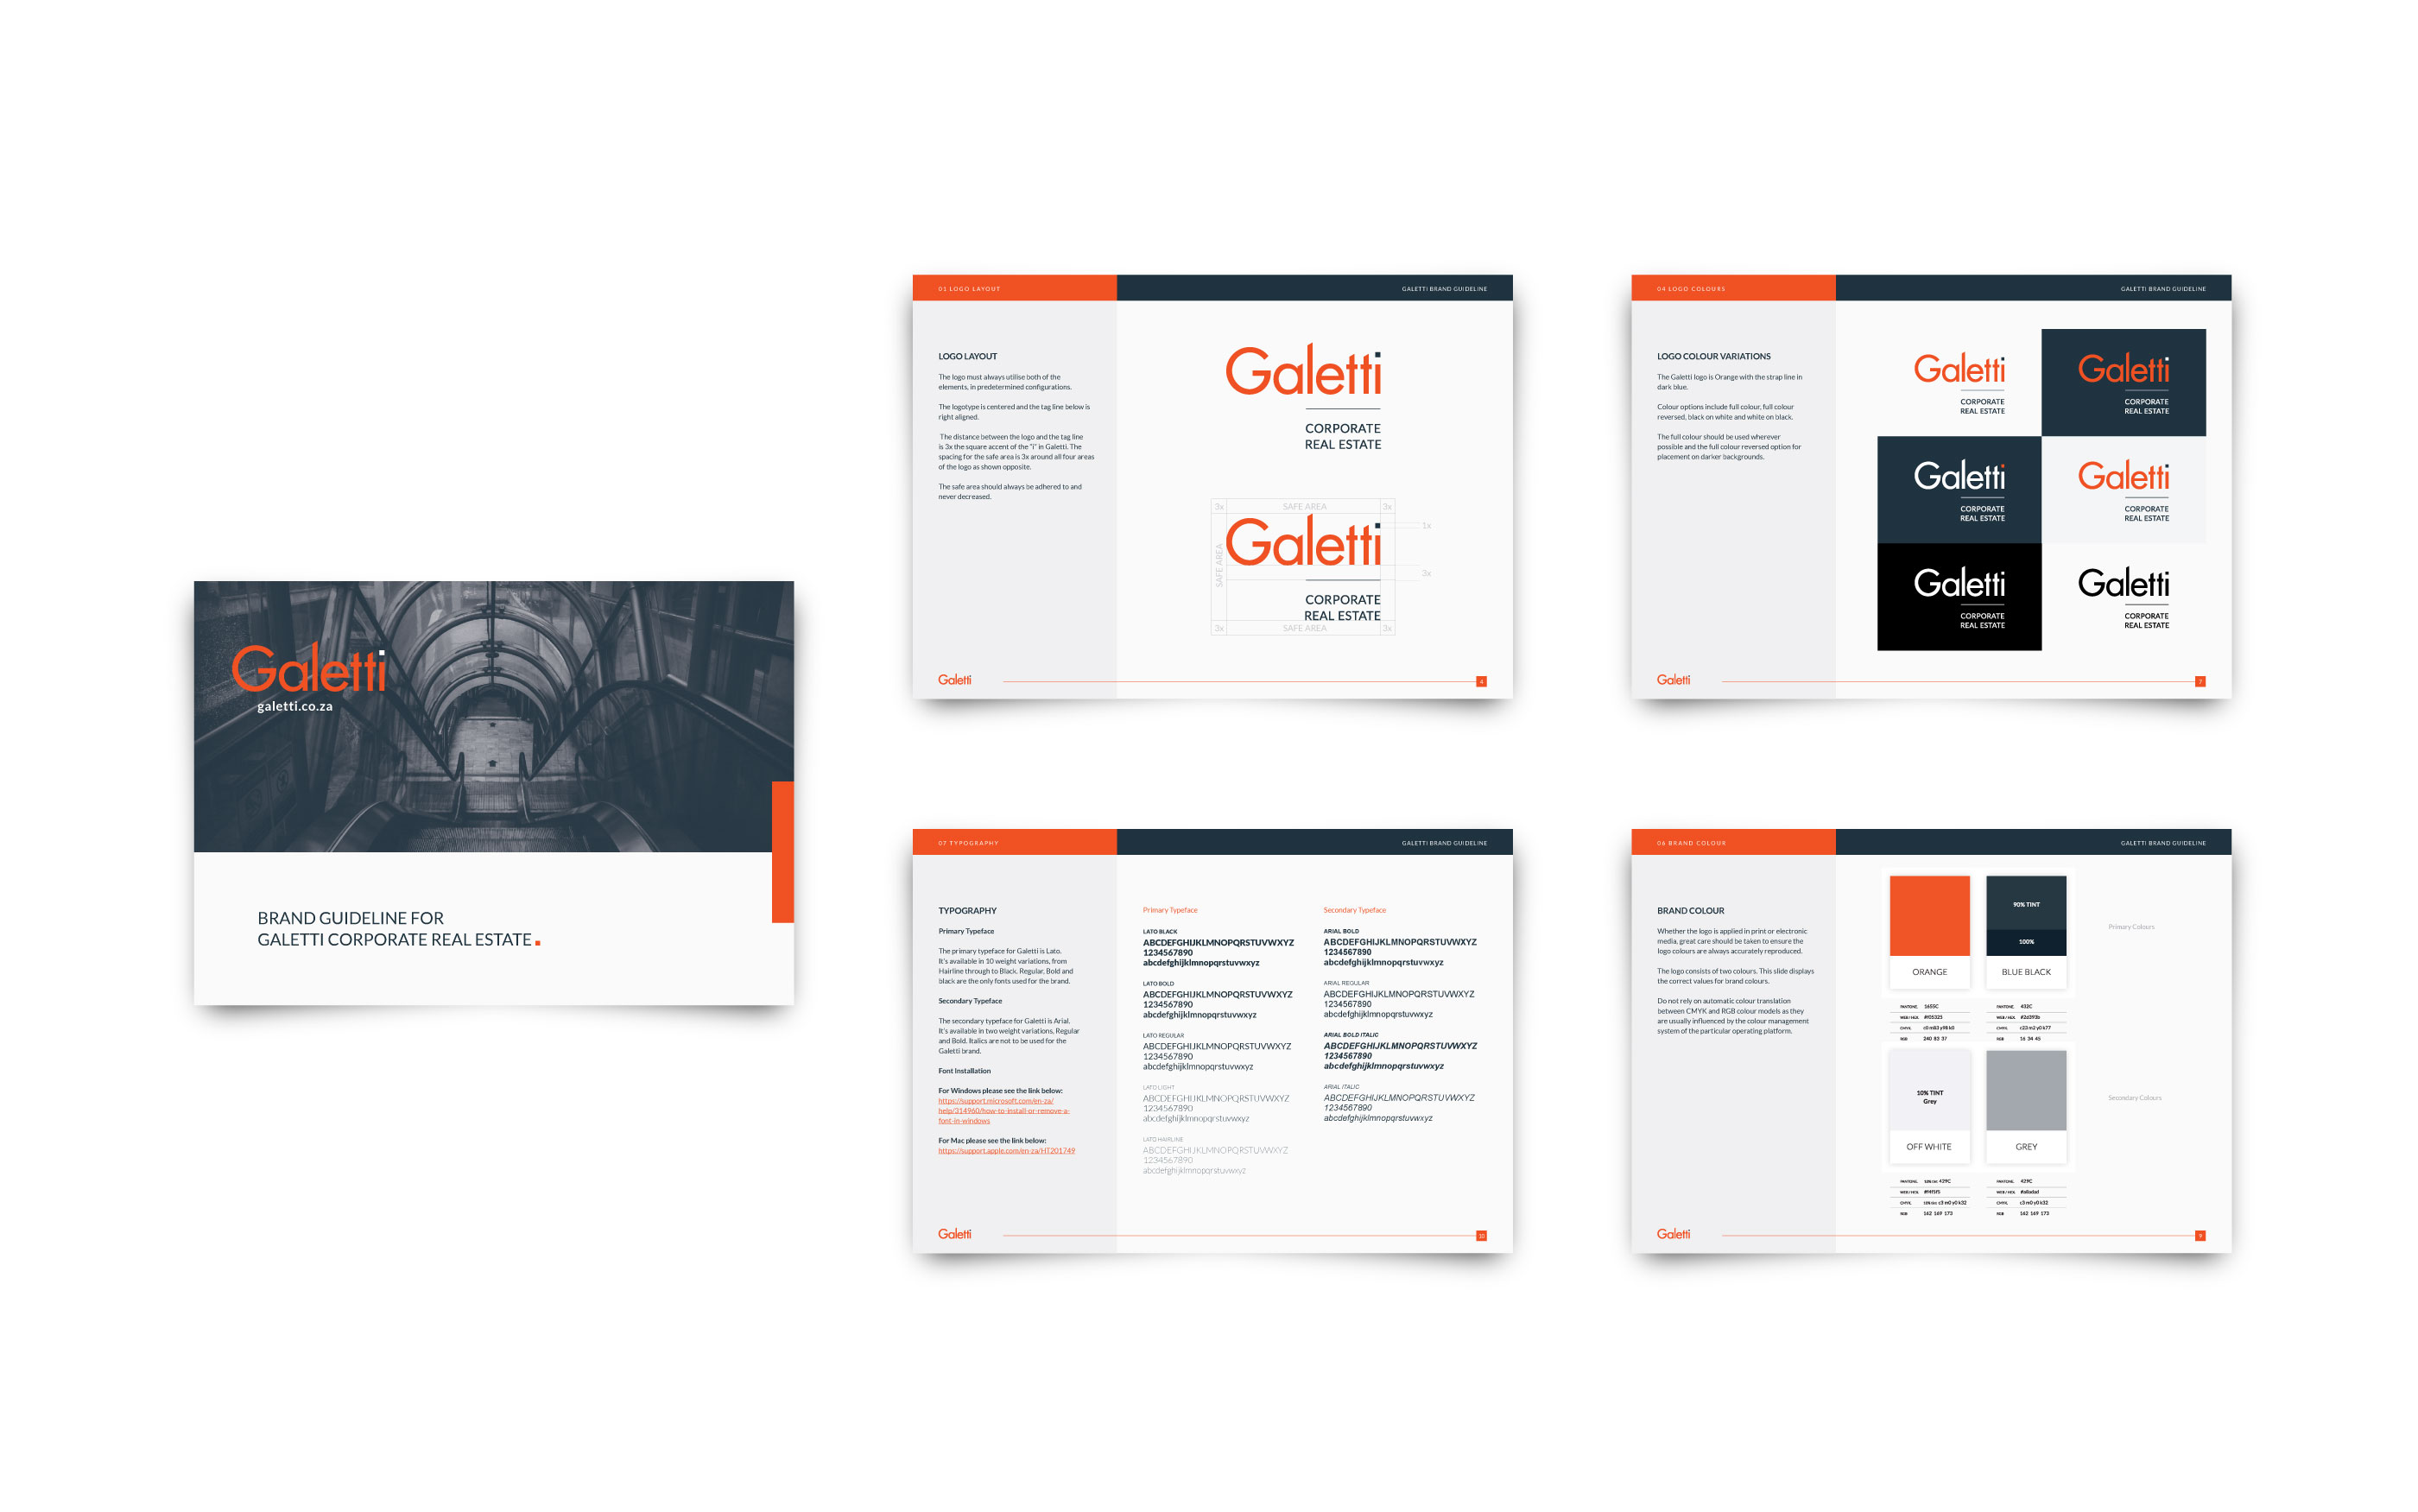 Galetti CRE corporate identity design 8